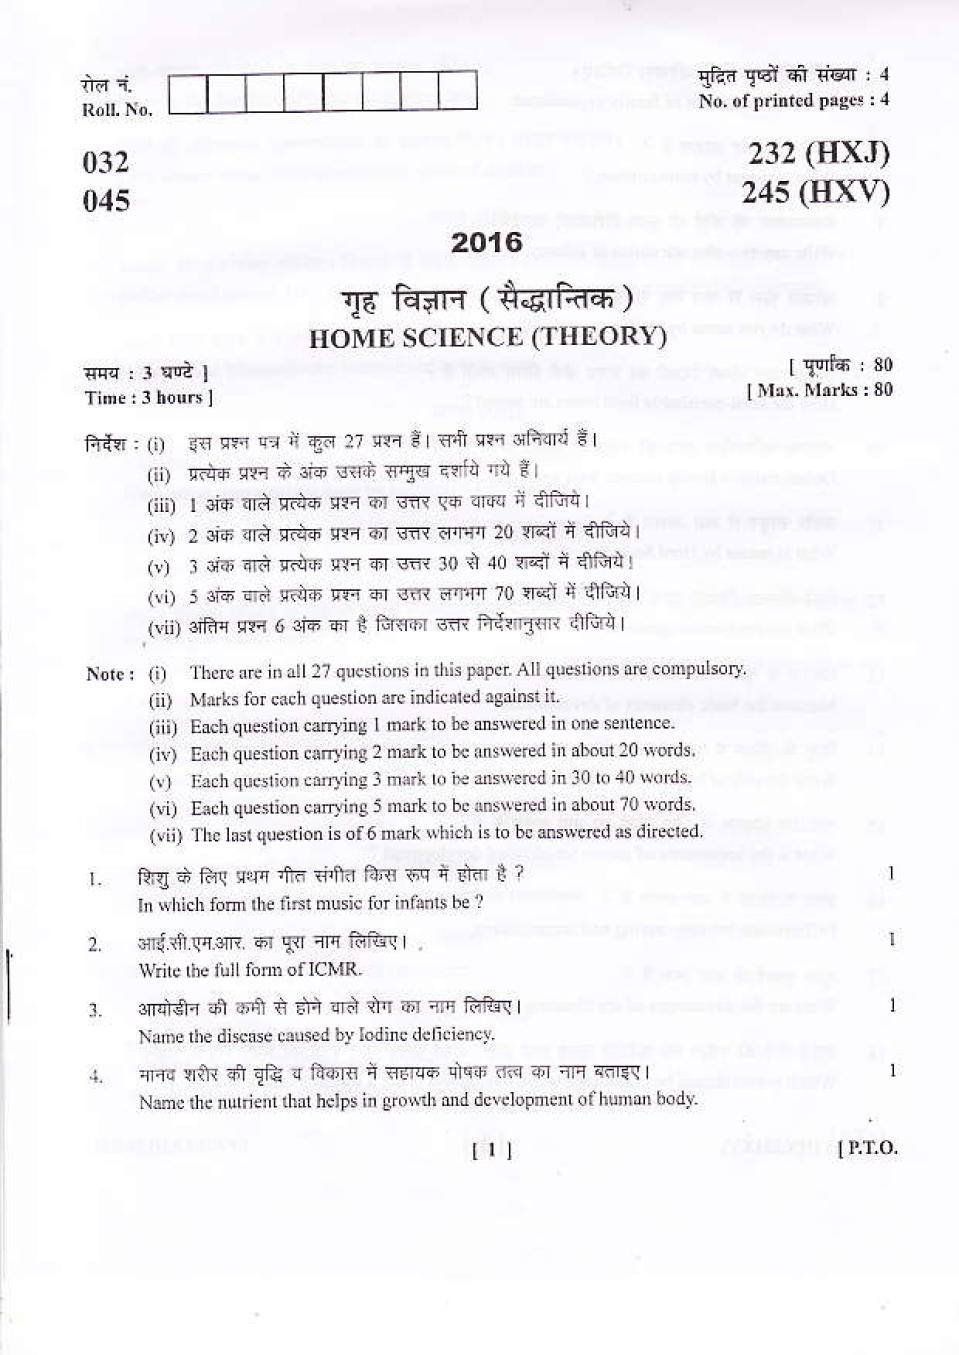 Uttarakhand Board Question Paper Class 10 - Home Science